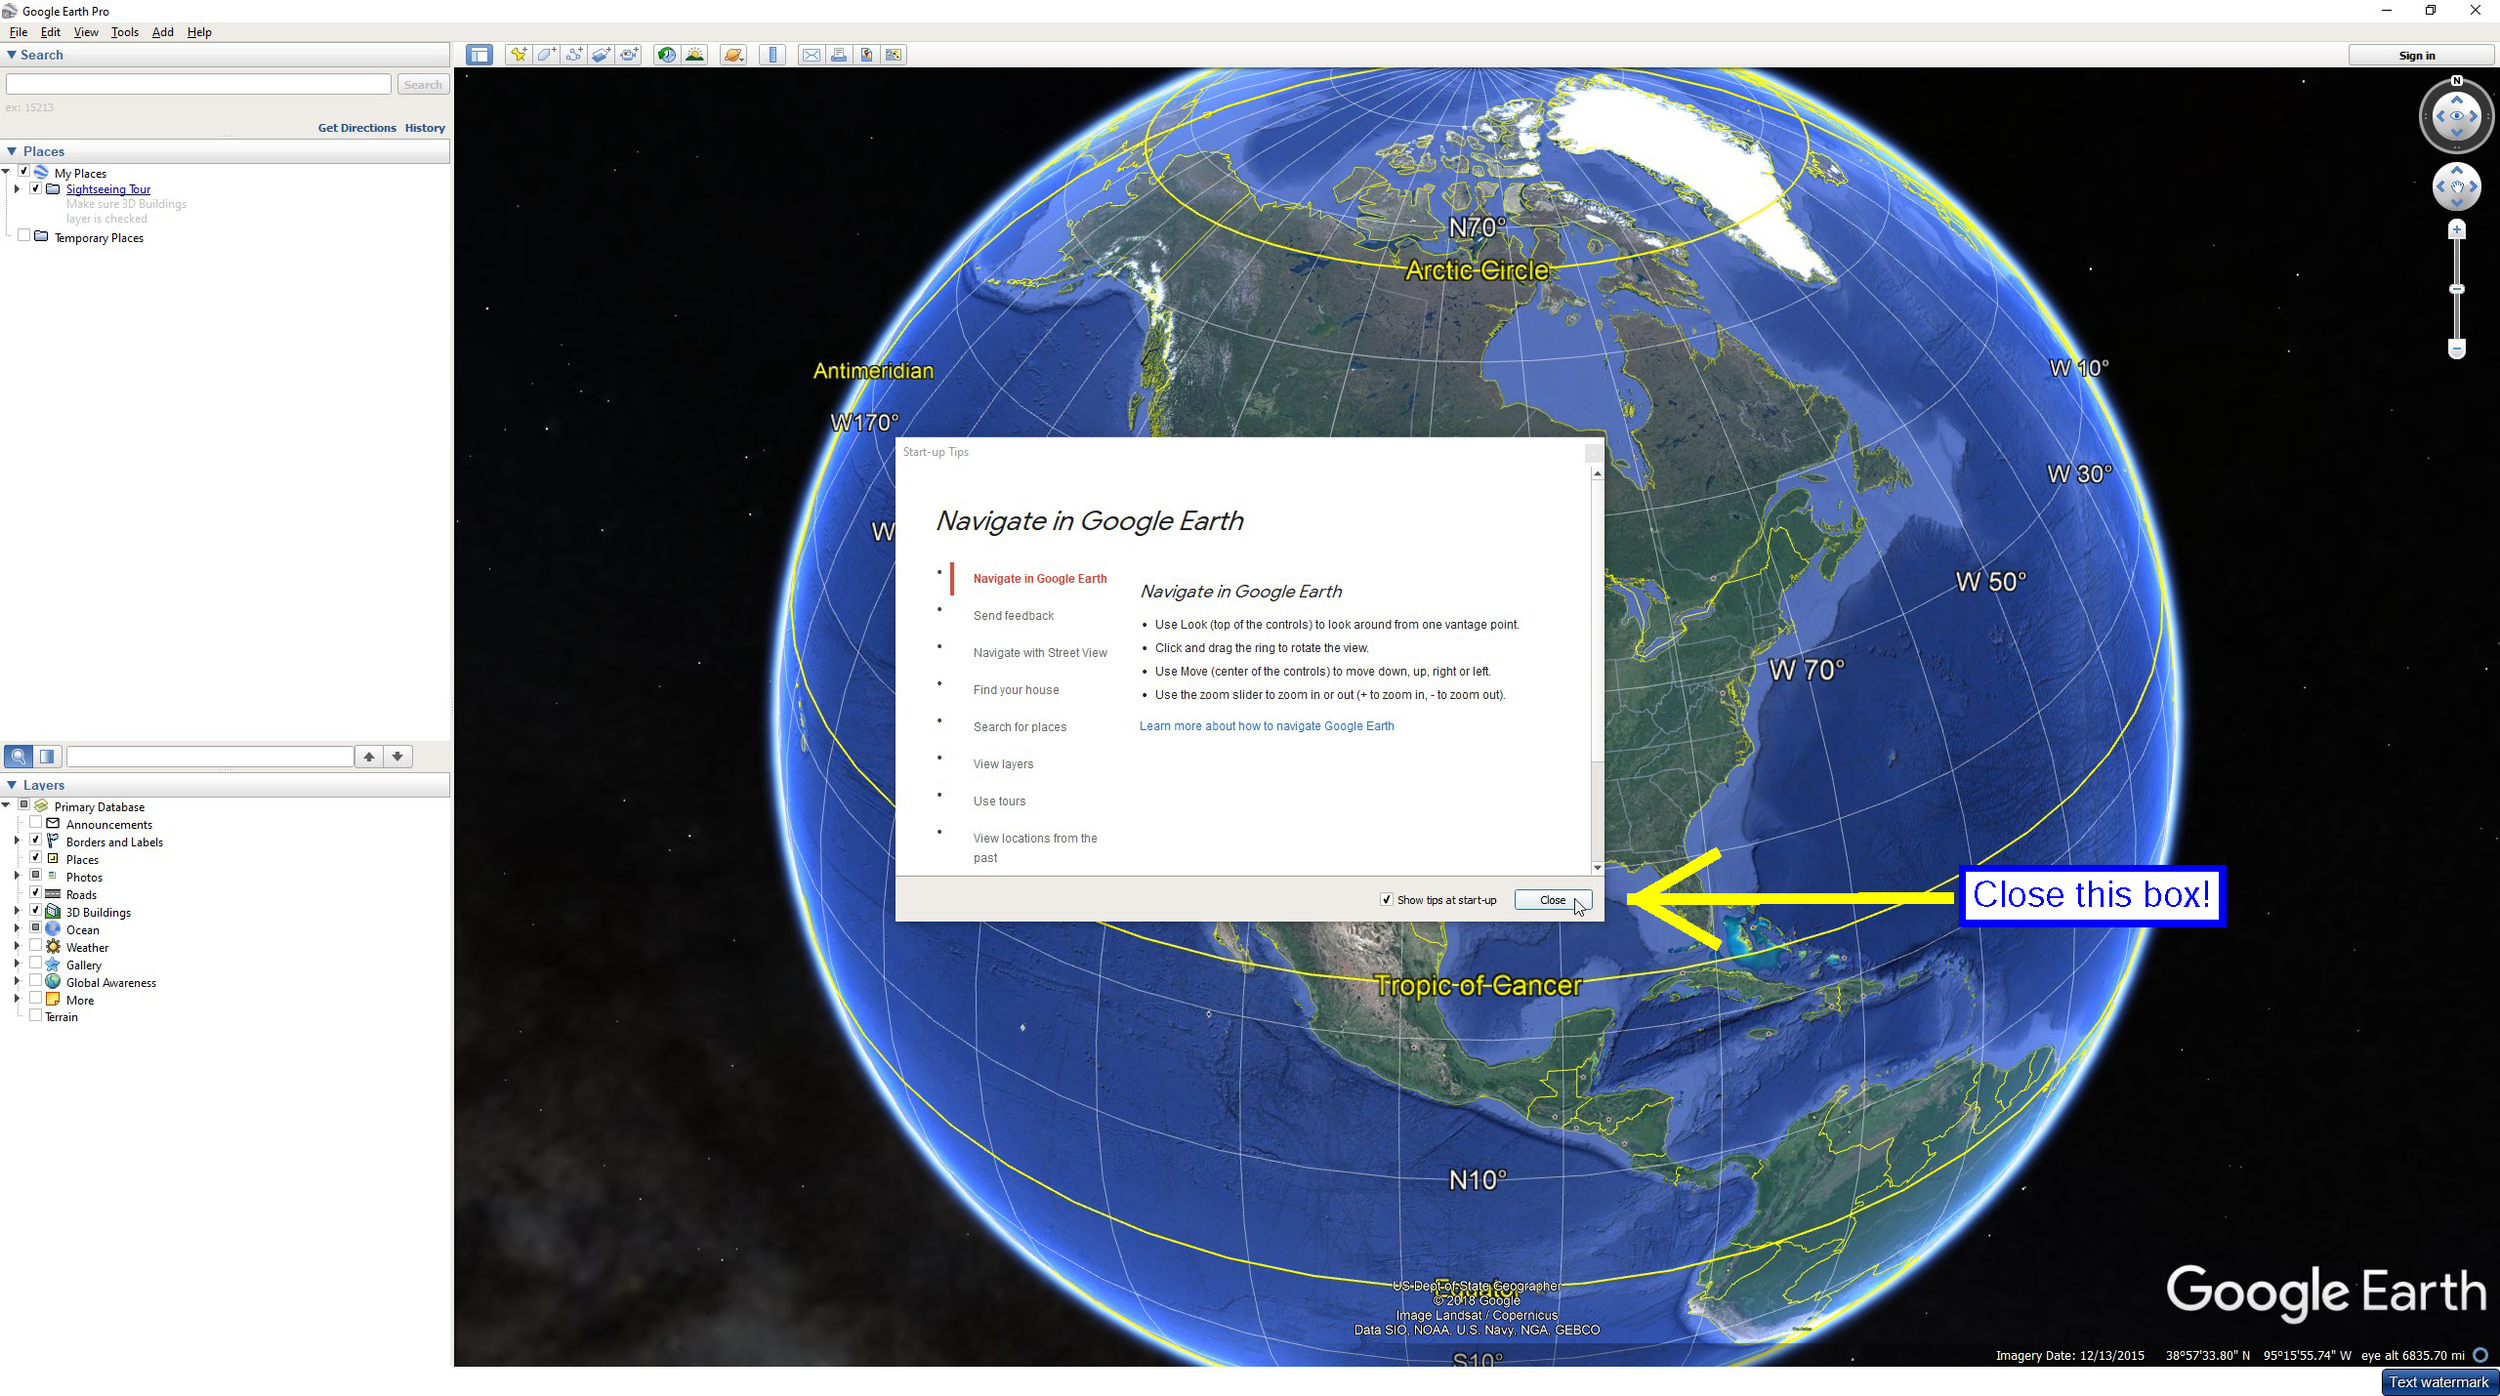 RoofOnline.com - How to Find Your House in Google Earth 1.png